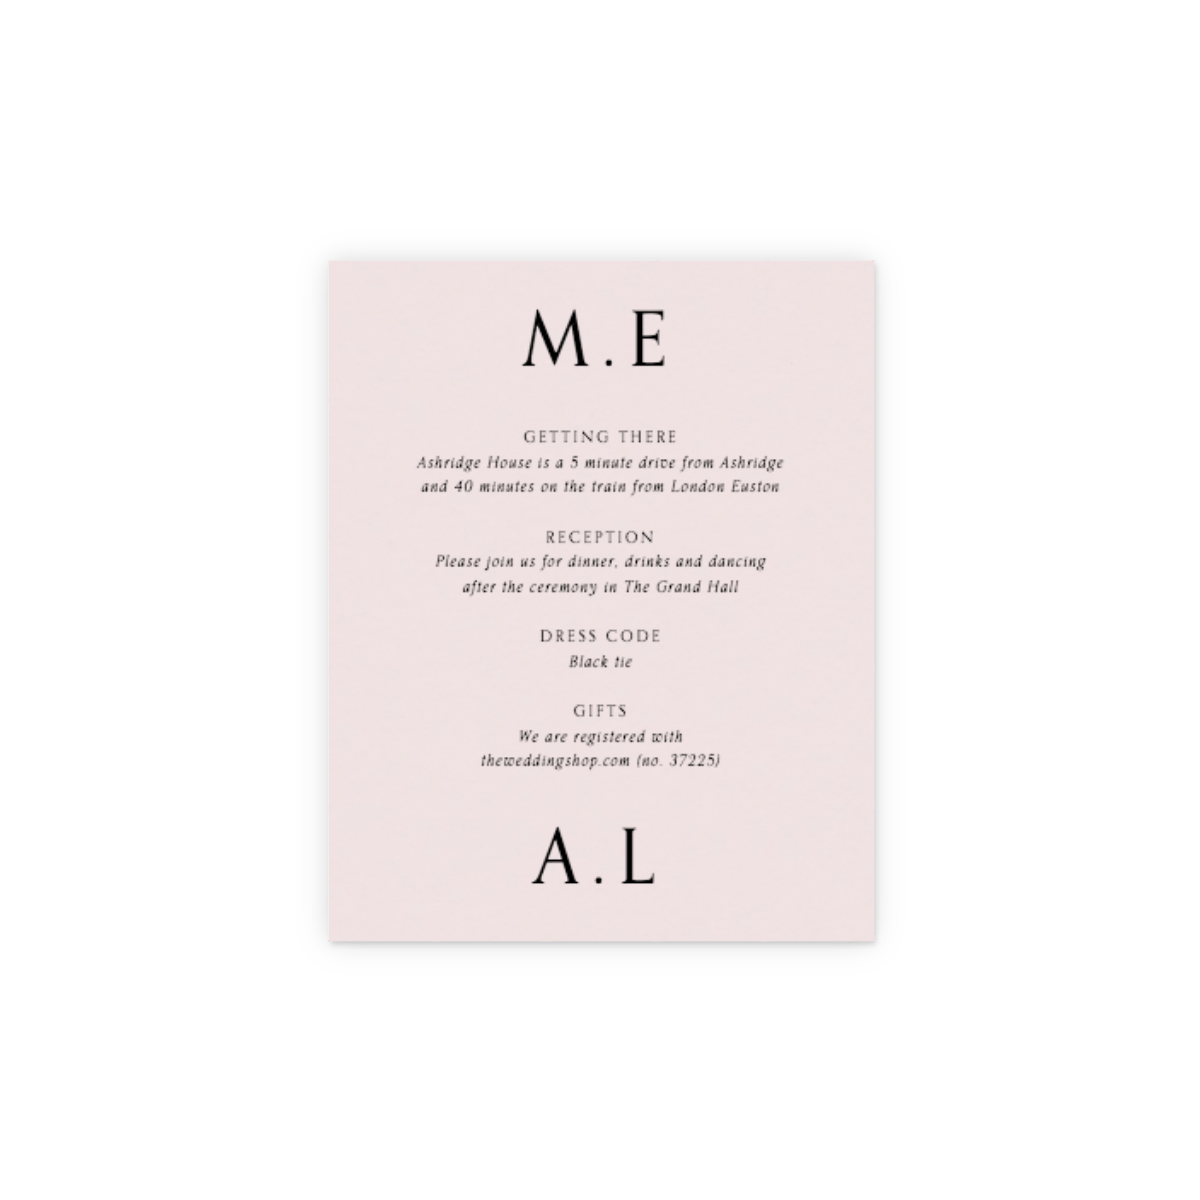 Https%3a%2f%2fwww.papier.com%2fproduct image%2f61471%2f9%2fclassical monogram 14629 info card 1551093663.png?ixlib=rb 1.1